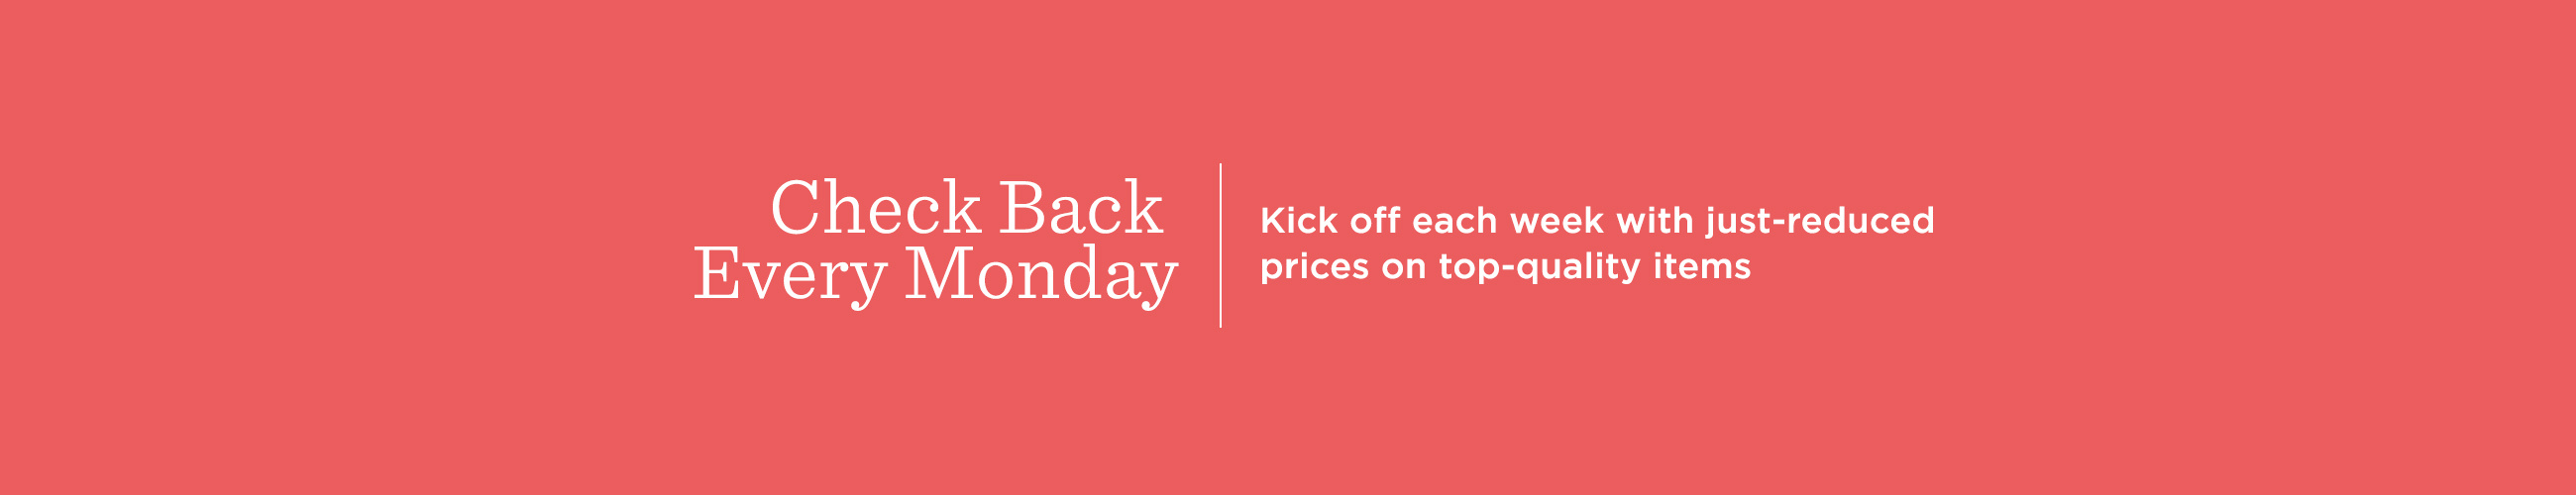 Check Back Every Monday. Kick off each week with clearance prices on top-quality items